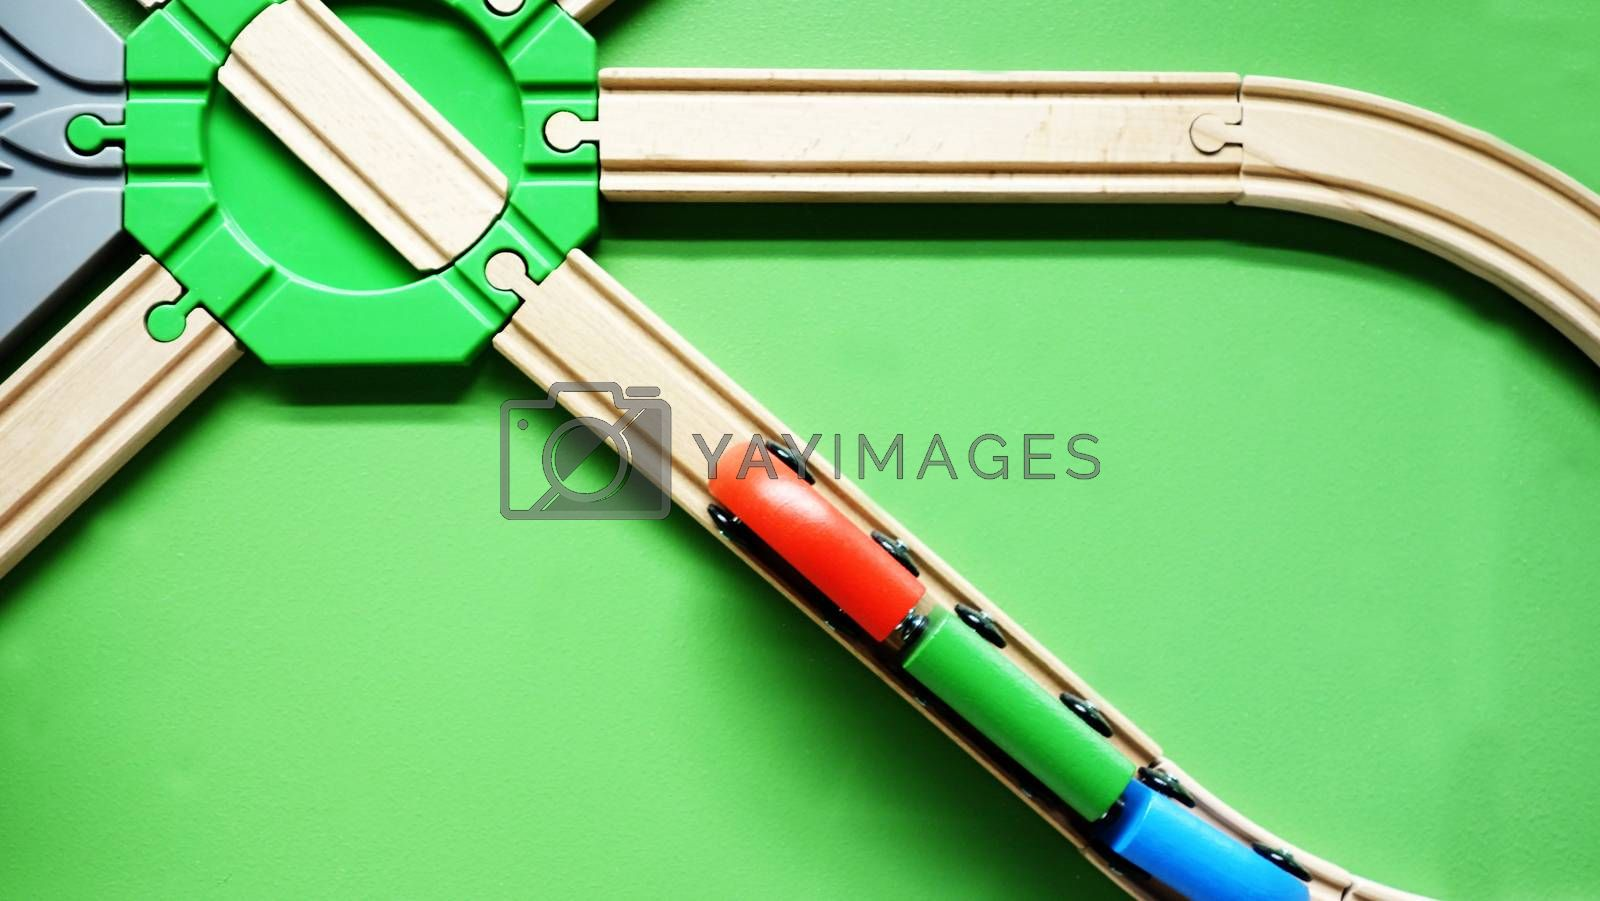 TOP VIEW: Wooden toy train move on curve wooden railways. Green background